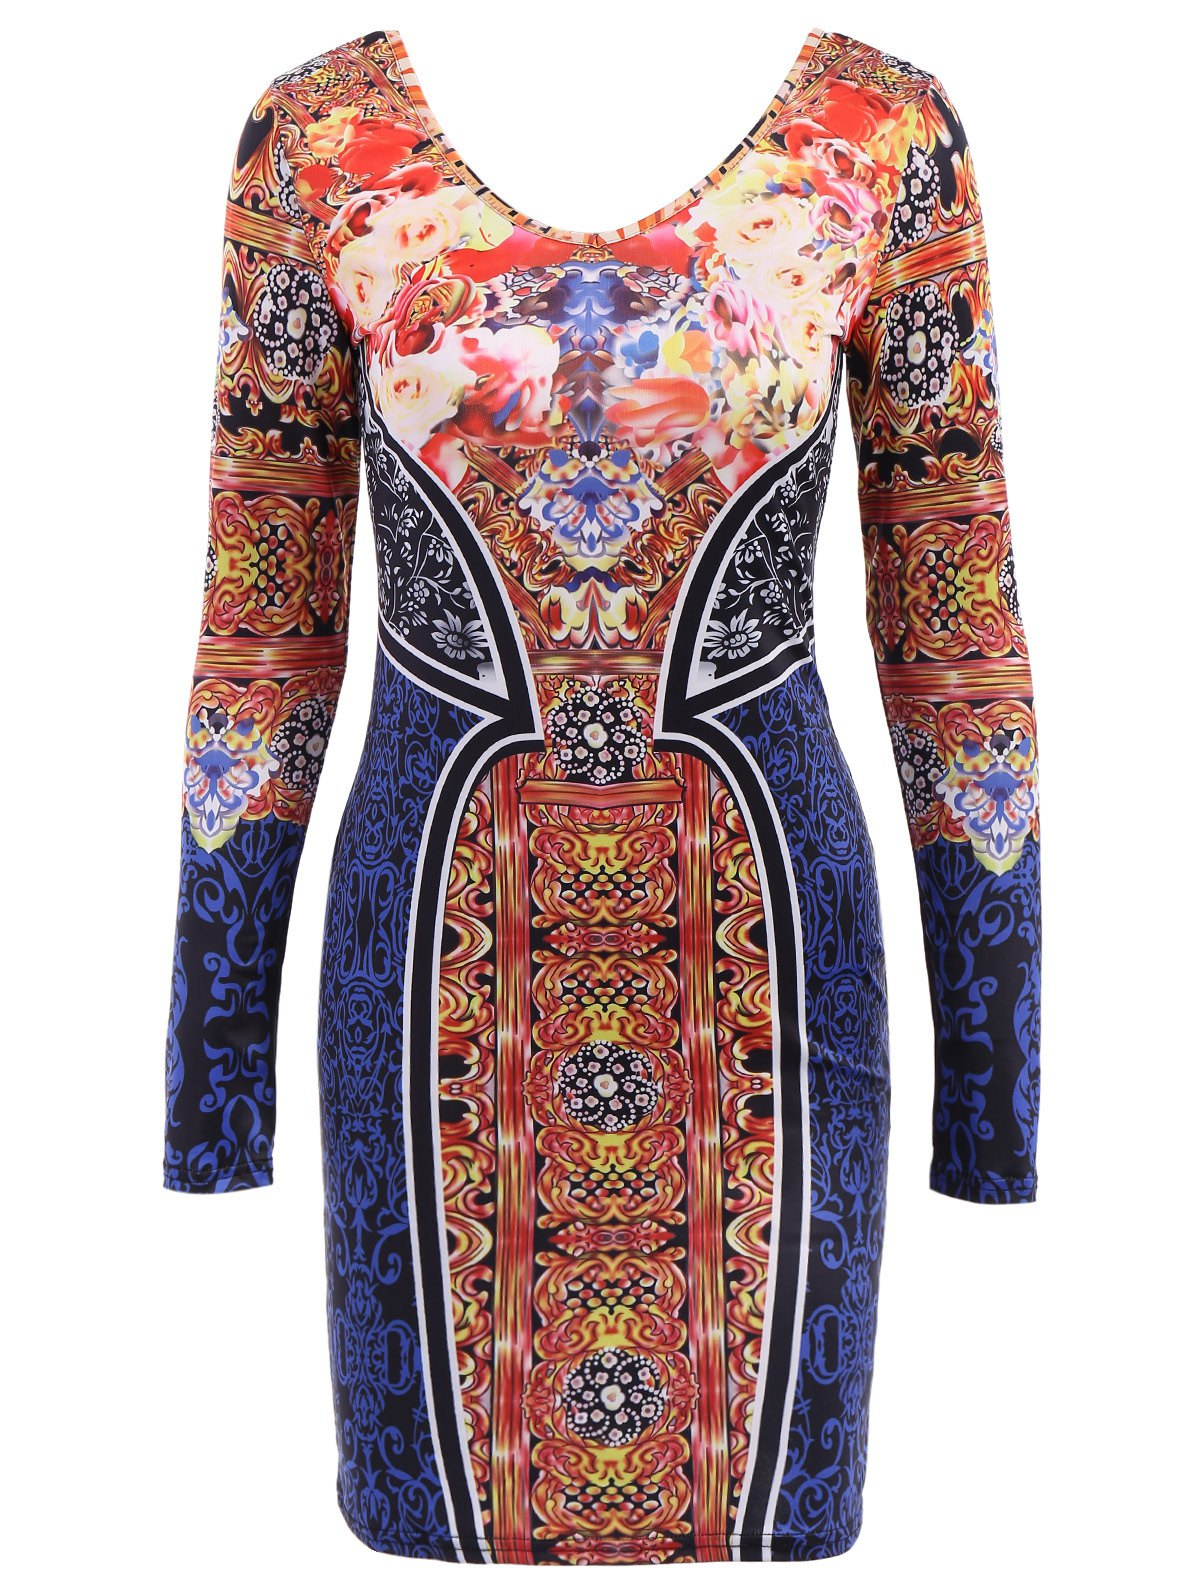 Floral Print Colorful Long Sleeve Scoop Neck Dress For Women - DEEP BLUE M